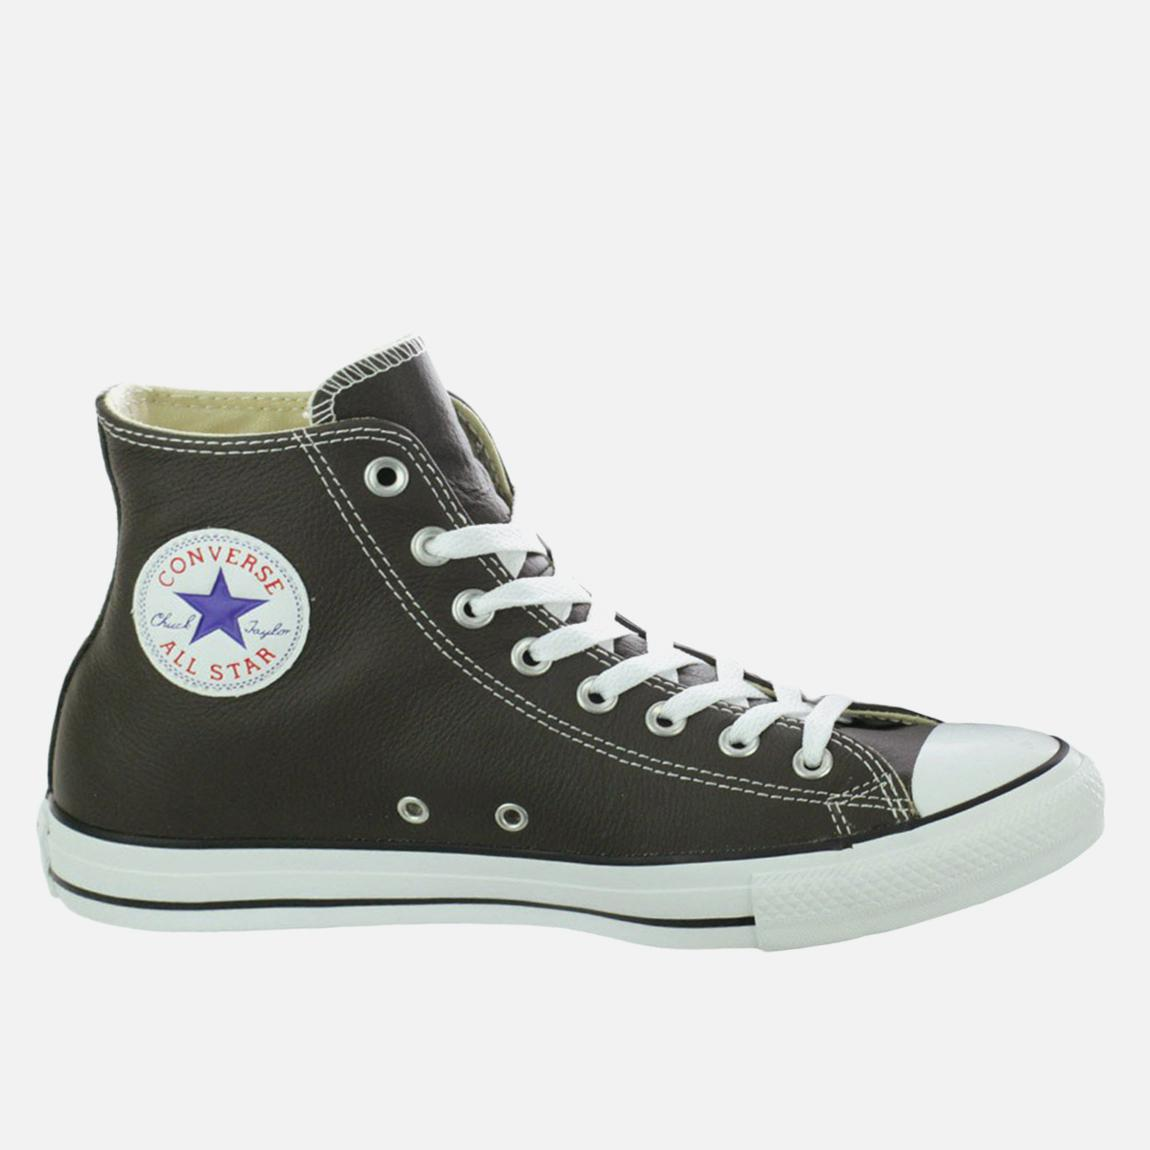 675acc43555b Chuck Taylor All Star Lean – Pine Needle Converse Sneakers ...